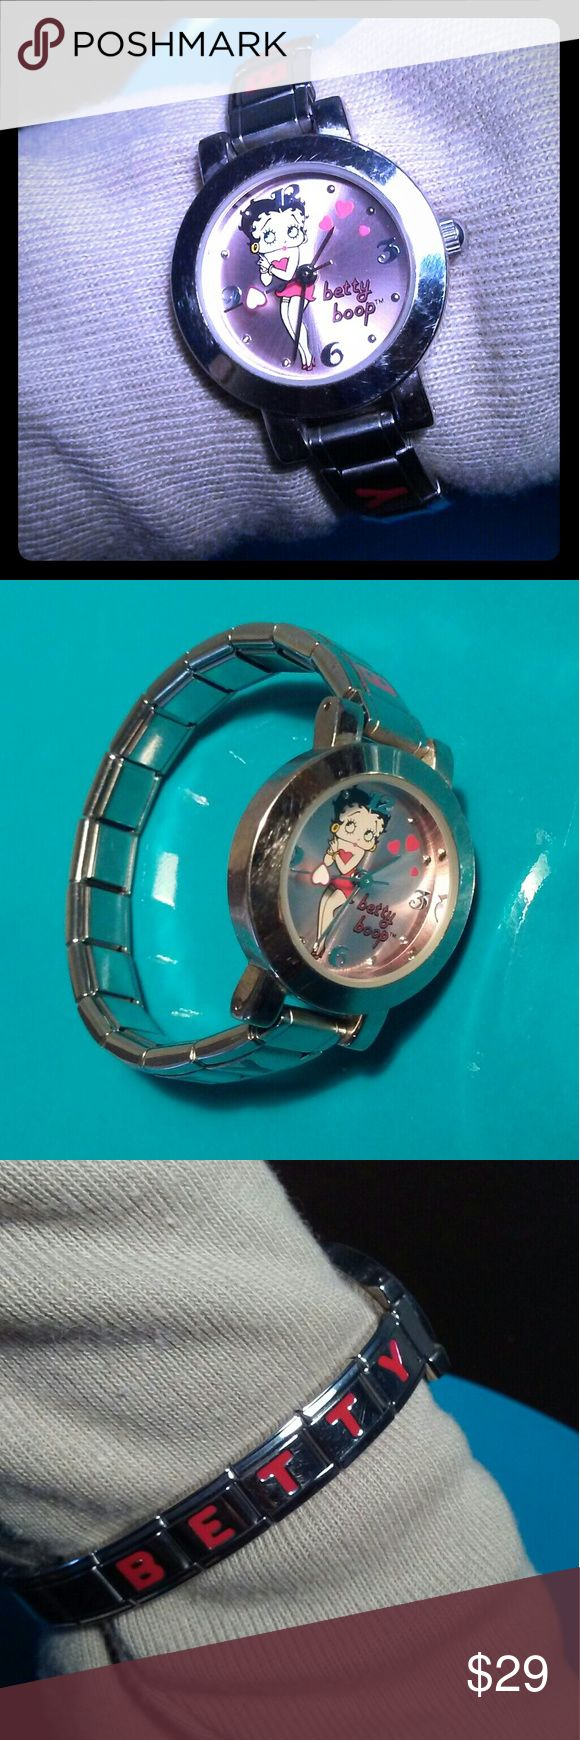 """Betty Boop Watch Betty Boop red dress watch with """"Betty"""" & """"Boop"""" written down the sides. Stainless steel. Elastic band.   ❄ Love it, but hate the price? Make me a reasonable offer... I'm open to barter and trade too. Betty Boop Jewelry"""